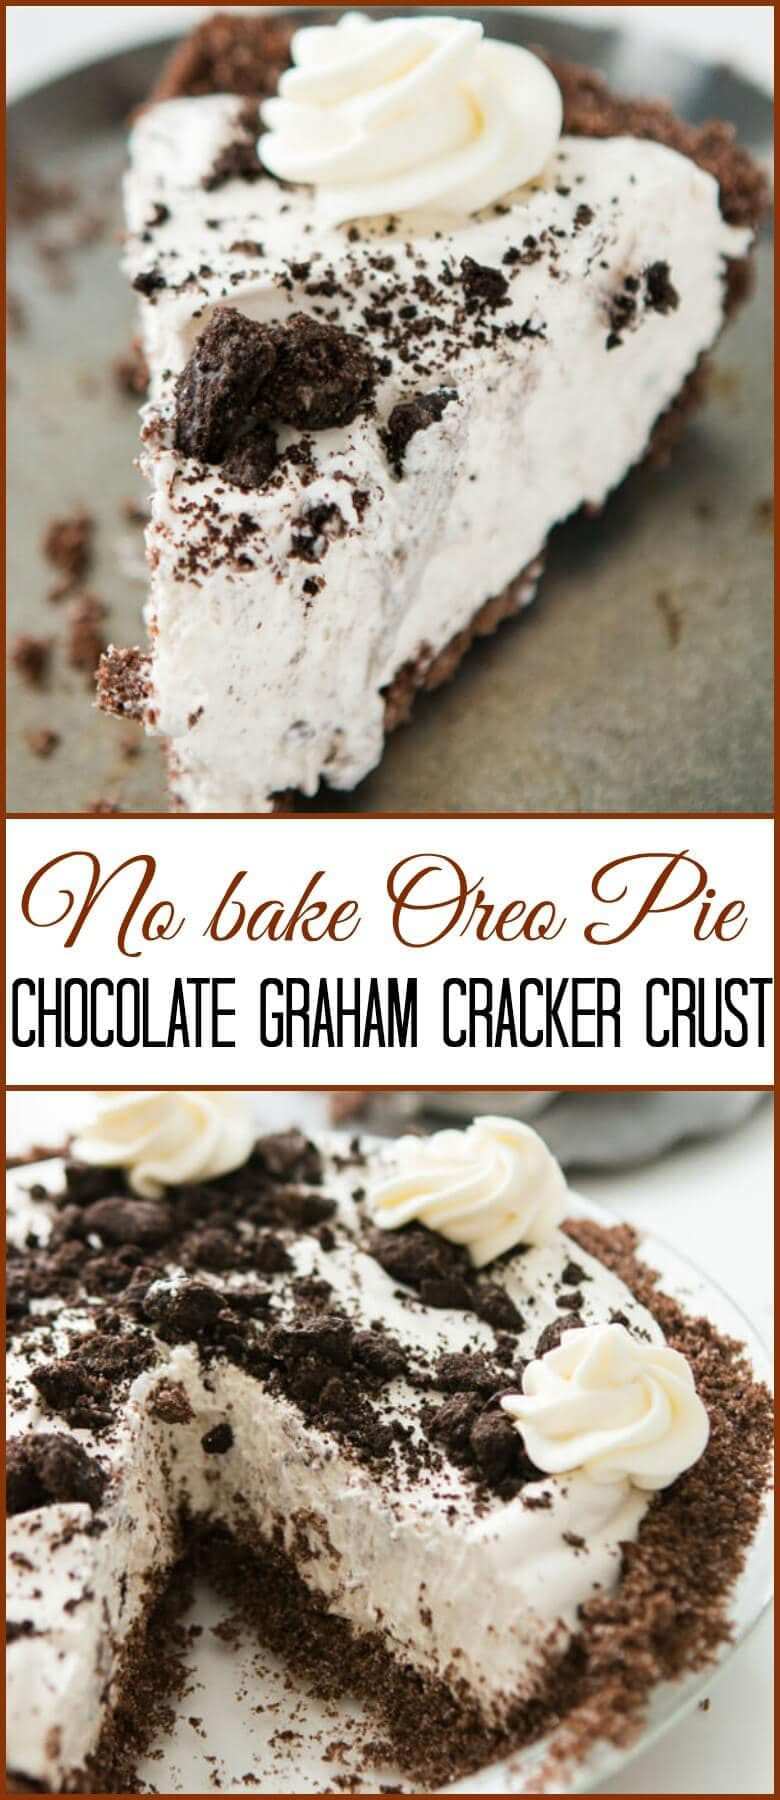 This is one of our most popular pie recipes and it's an easy pie recipe! Who wants a slice of no bake oreo pie with chocolate graham cracker crust?! ohsweetasil.com